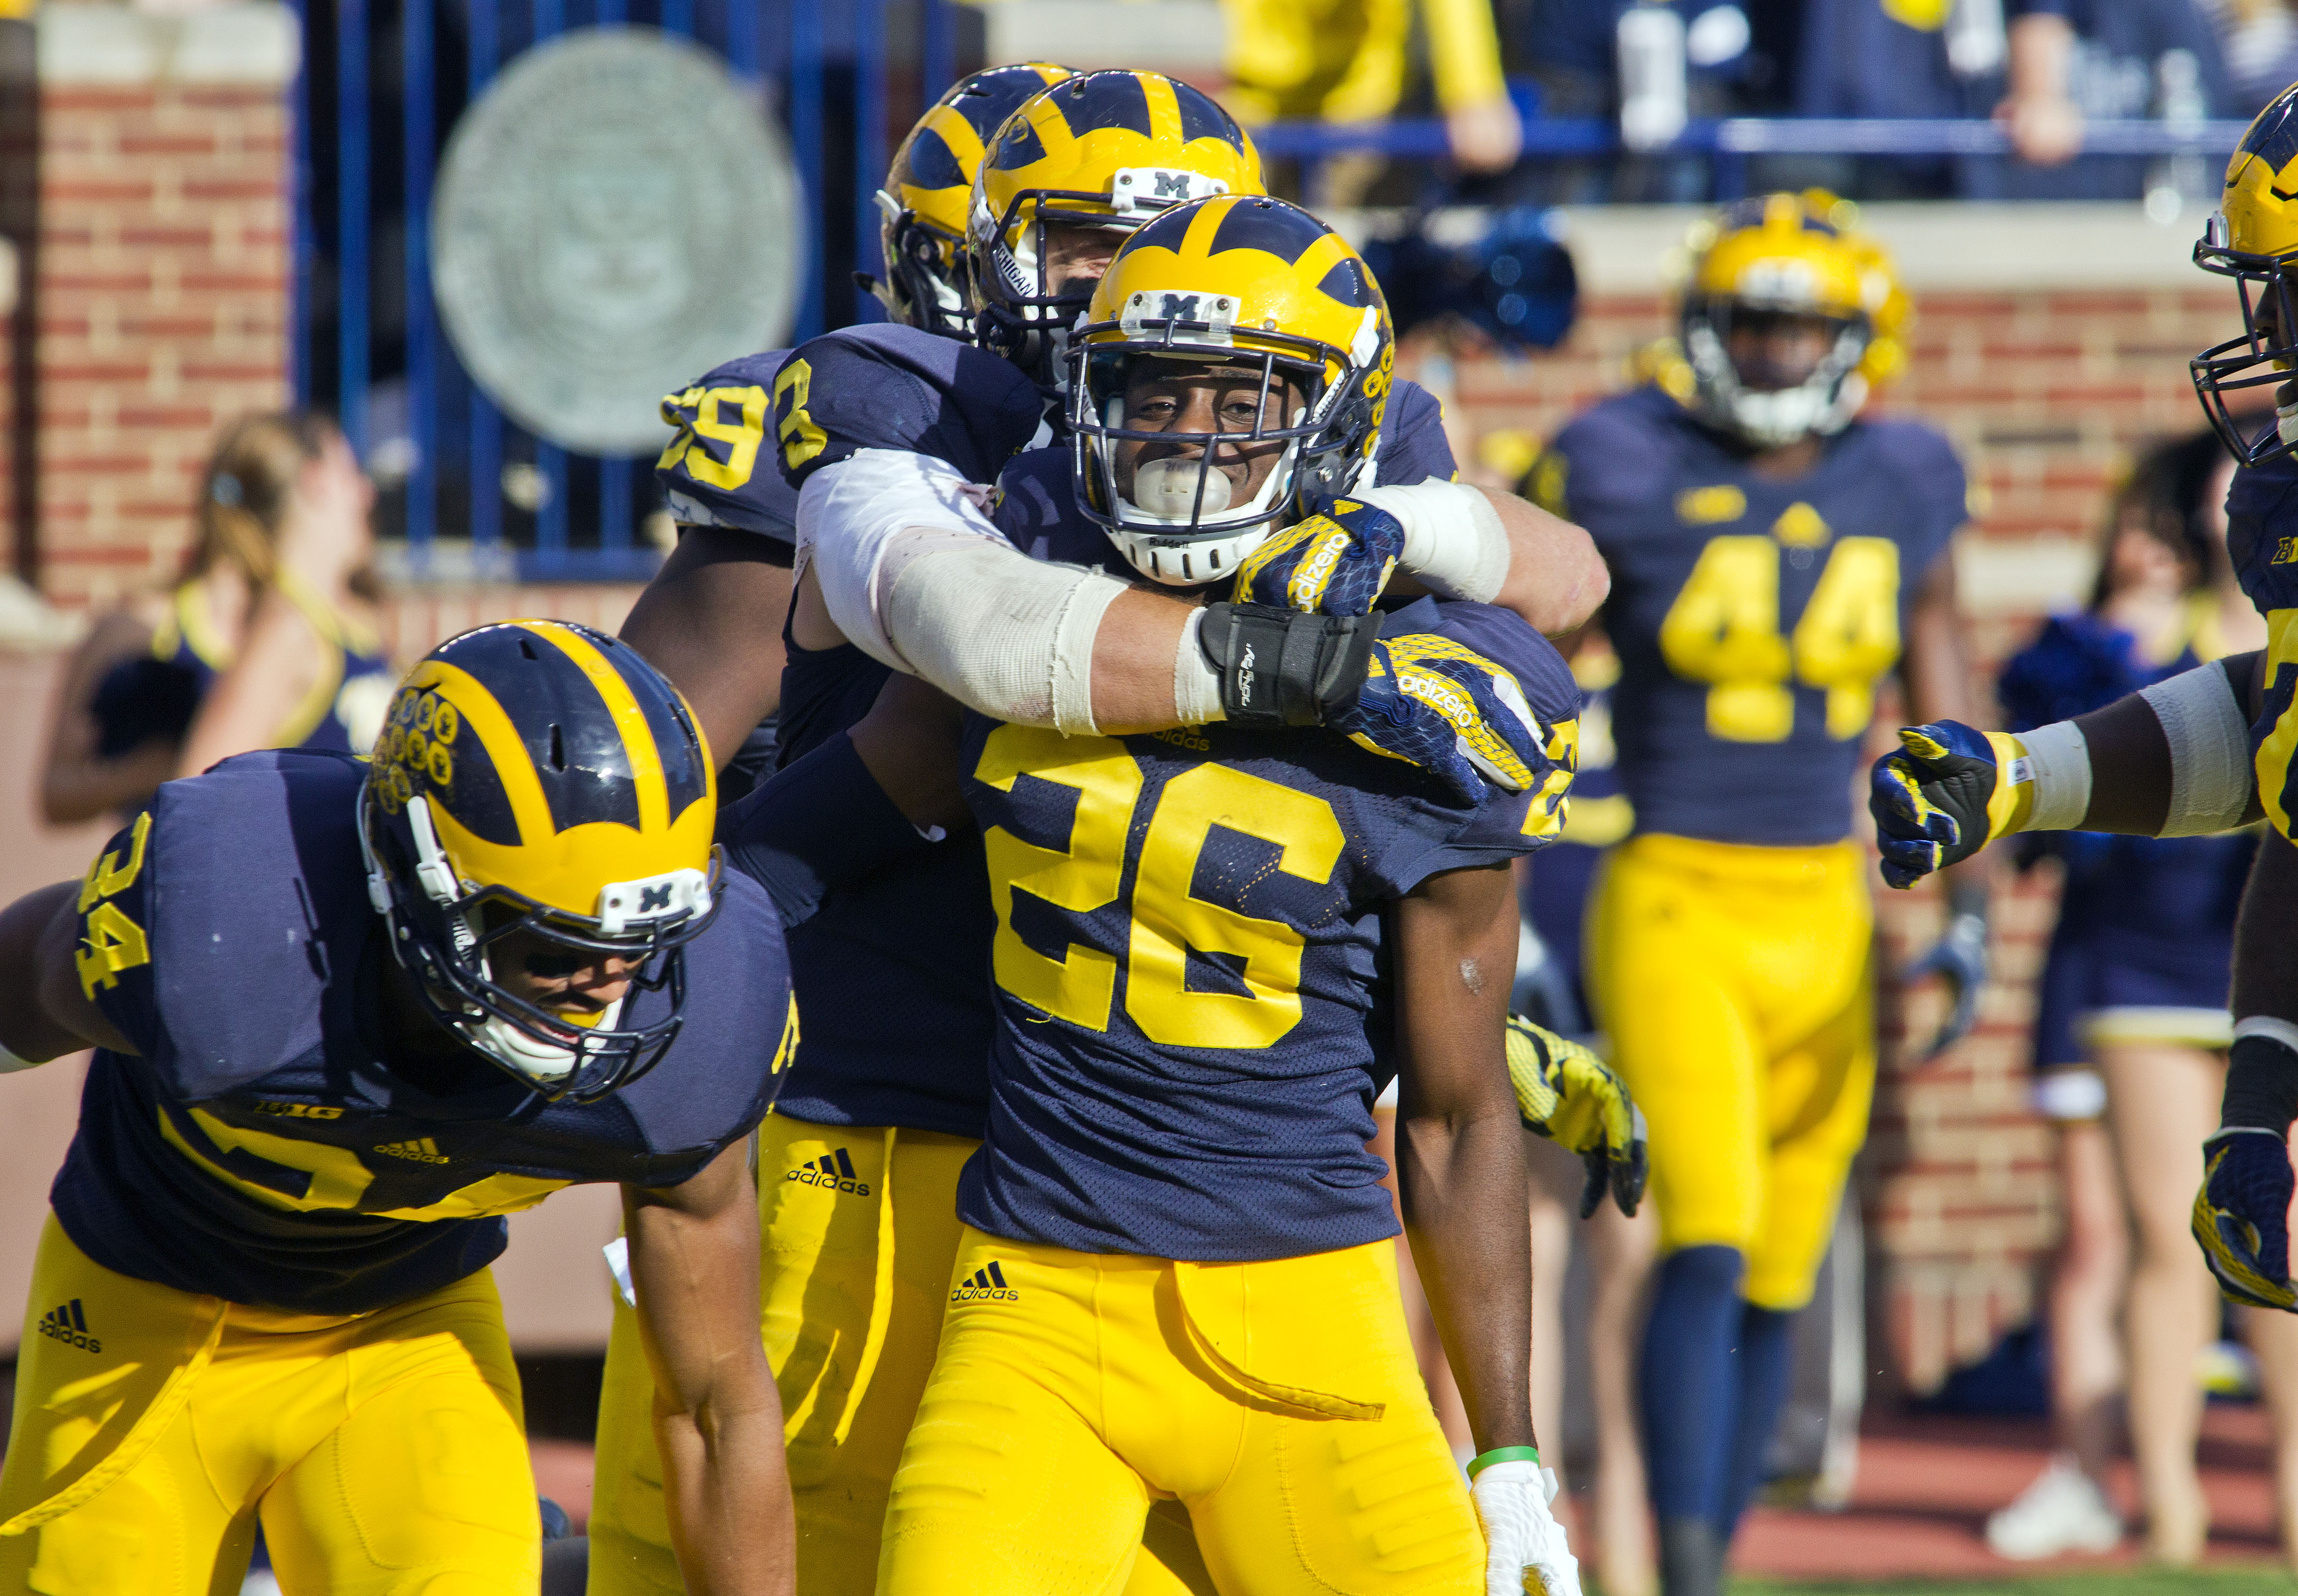 Michigan defensive back Jourdan Lewis (26) celebrates with teammates after scoring a touchdown on an interception in the second quarter of an NCAA college football game against Northwestern in Ann Arbor, Mich., Saturday, Oct. 10, 2015. (AP Photo/Tony Ding